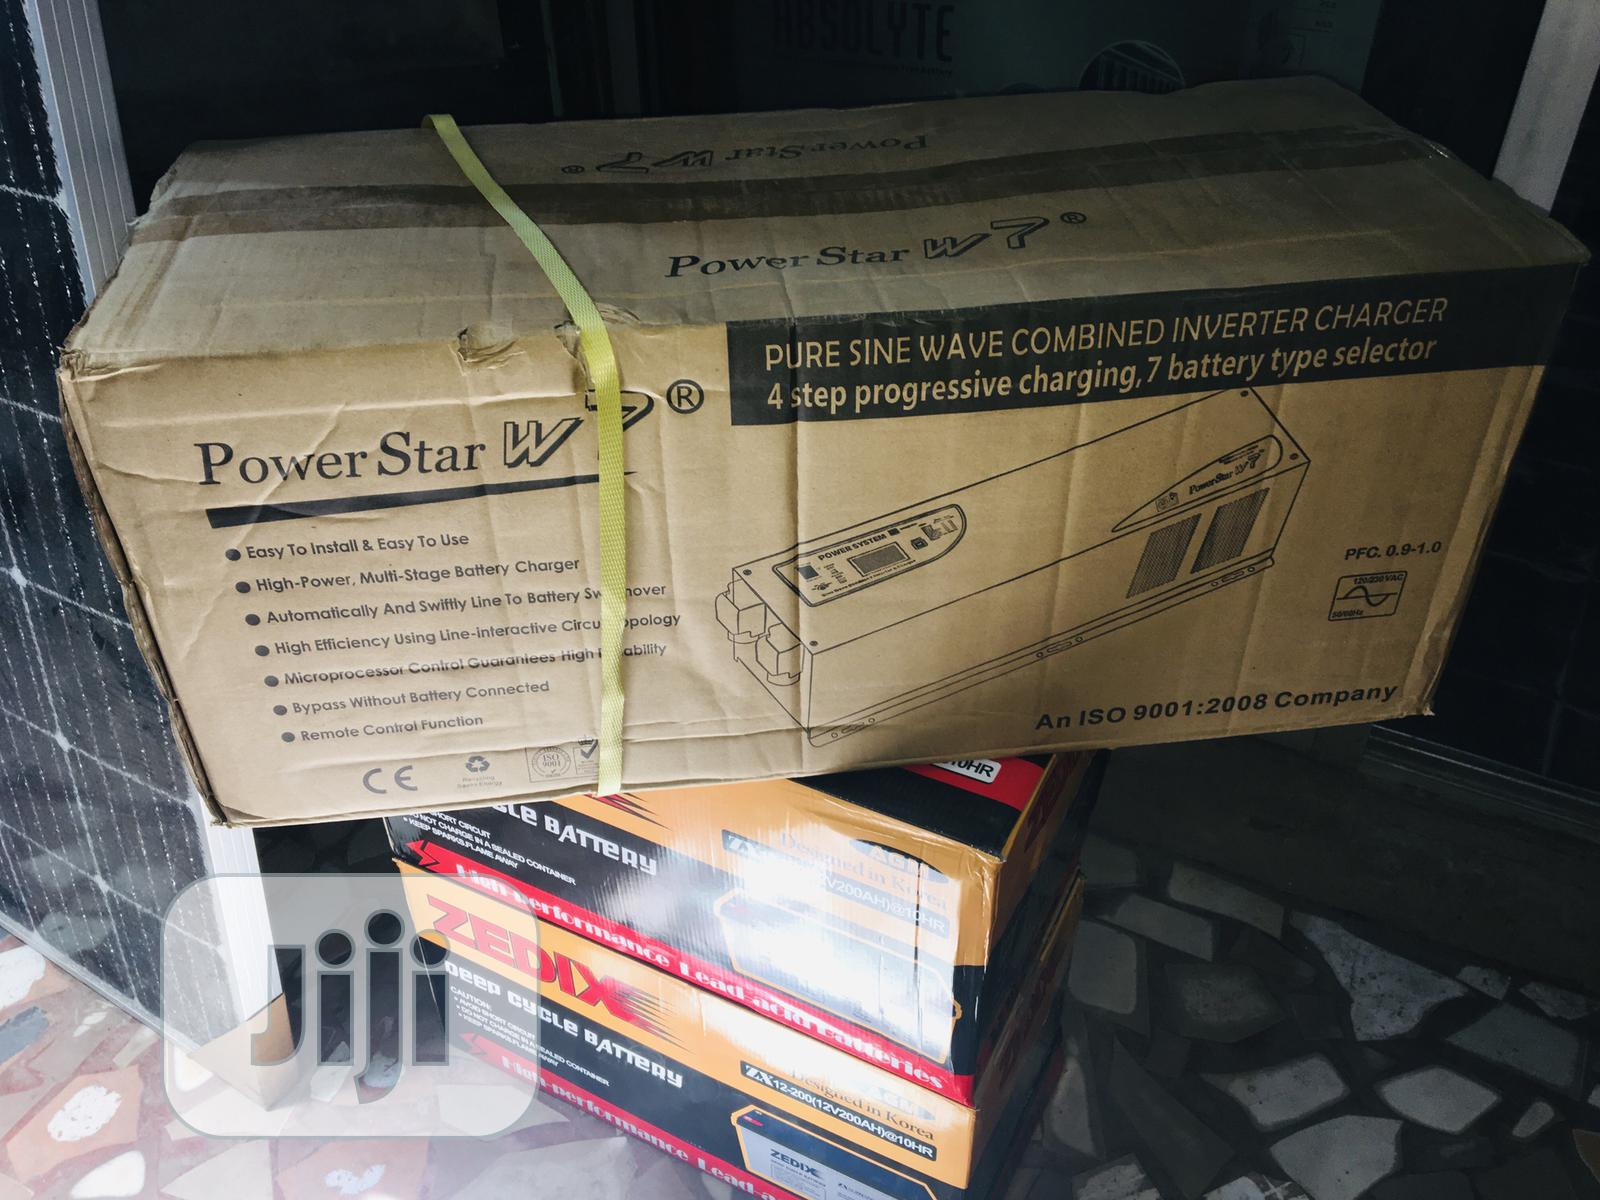 5kva Power Star Pure Sine Wave Combine Inverter And Charger